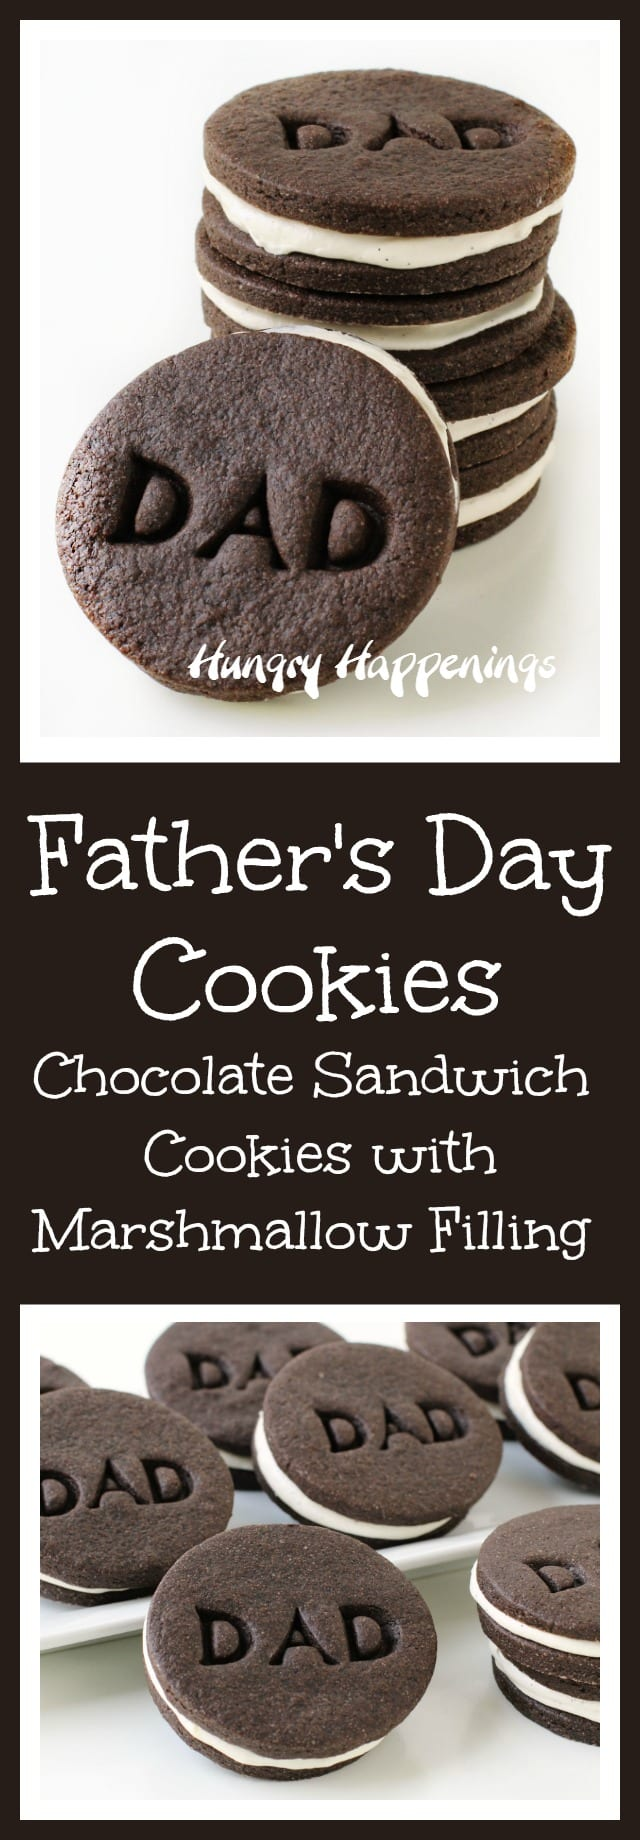 "Surprise your dad this Father's Day by making him a batch of homemade chocolate sandwich cookies filled with marshmallow cream and imprinted with ""DAD"" on top. These Father's Day Cookies will make a great dessert or gift."